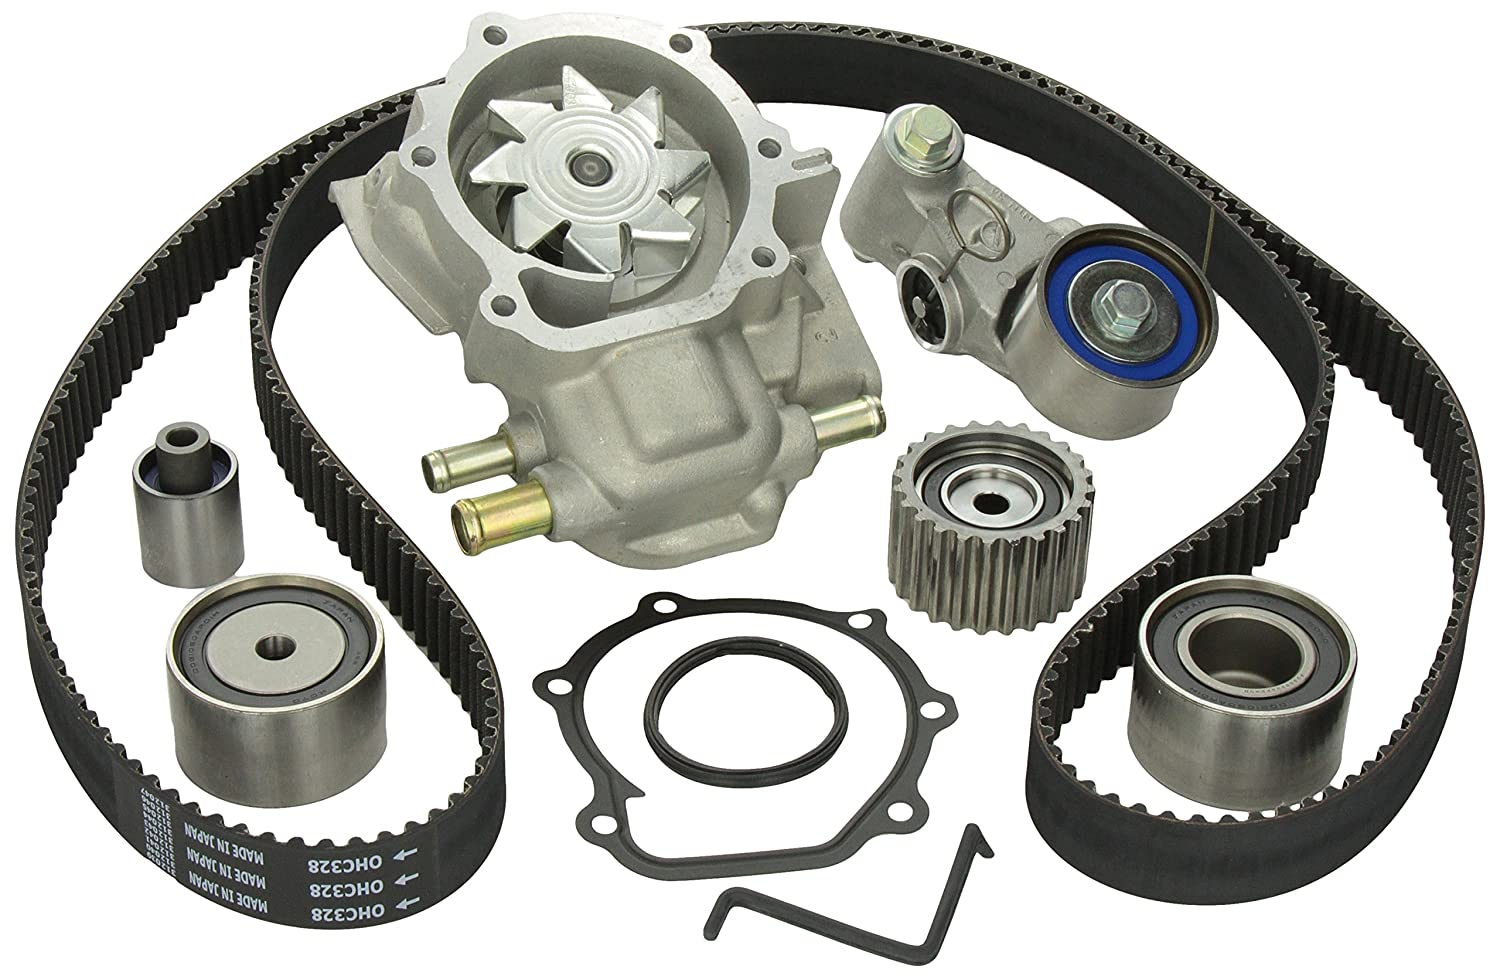 Gates Tckwp328 Engine Timing Belt Kit With Water Pump Ej20k Jdm Pulleys Automotive